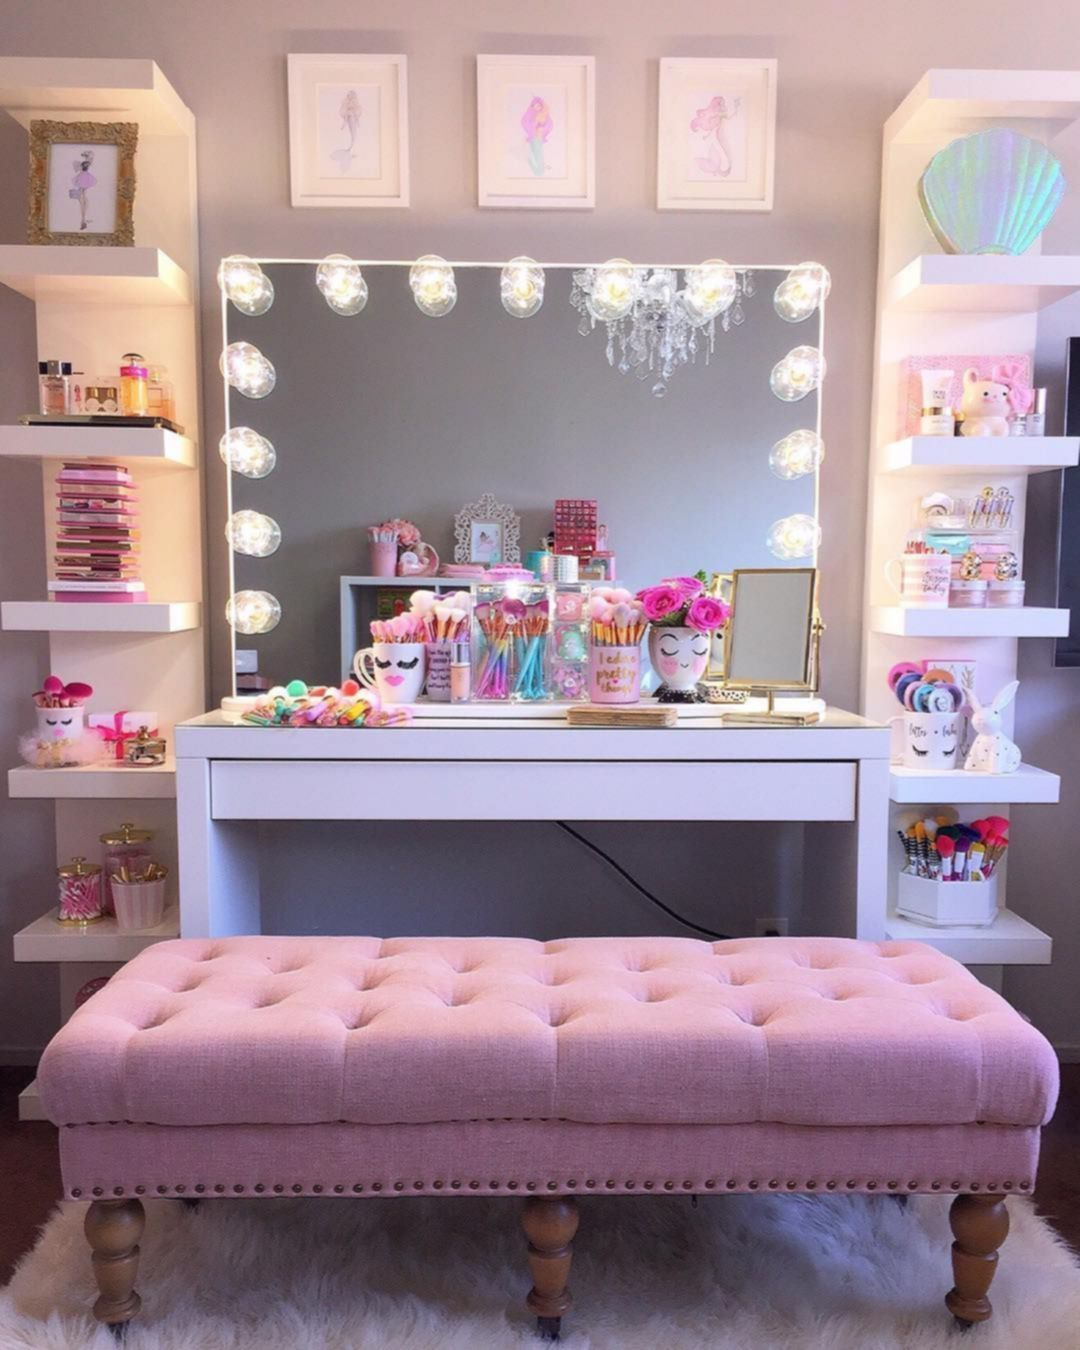 Awesome 25+ Makeup Rooms Design Ideas is part of Girl bedroom designs - One of the rooms you need to think about when designing a home is the makeup room  A woman needs a special room when they will makeup  So this space will make your wife feel more comfortable when y…